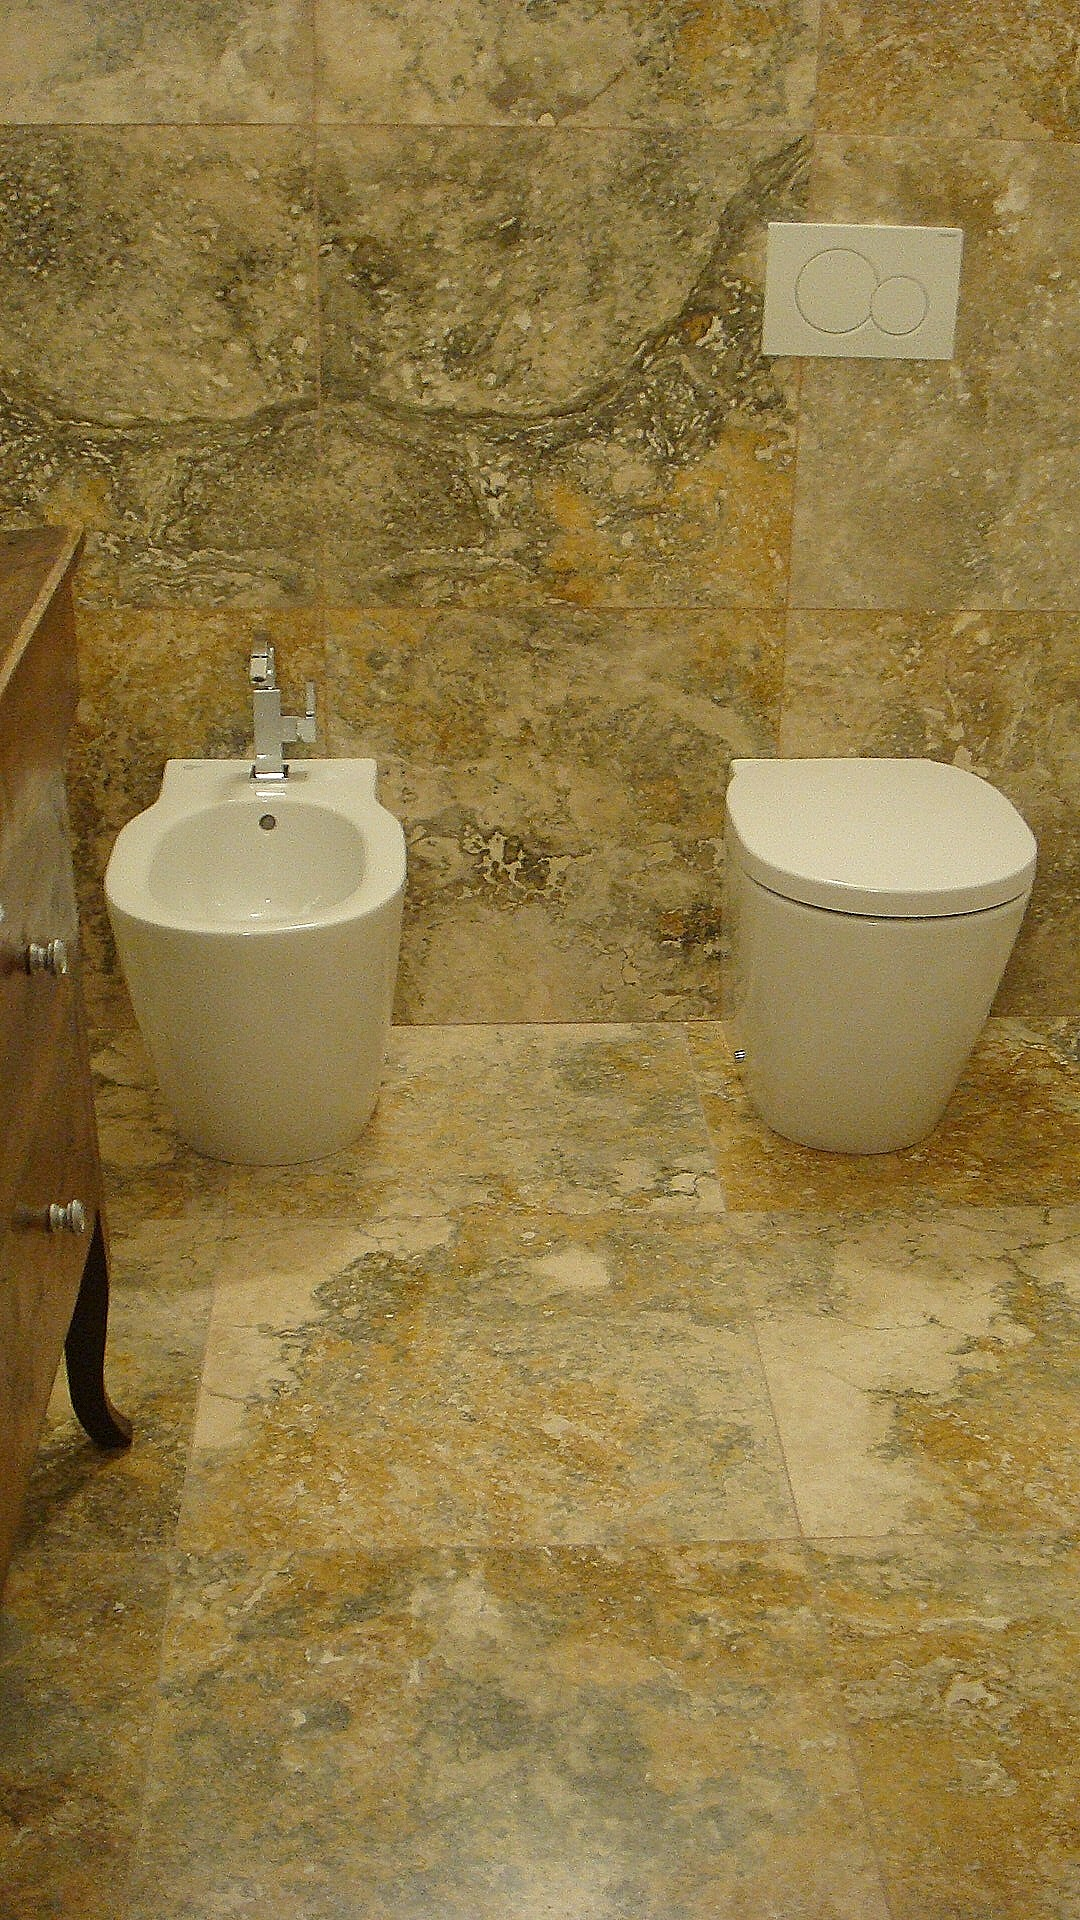 bagno travertino 3